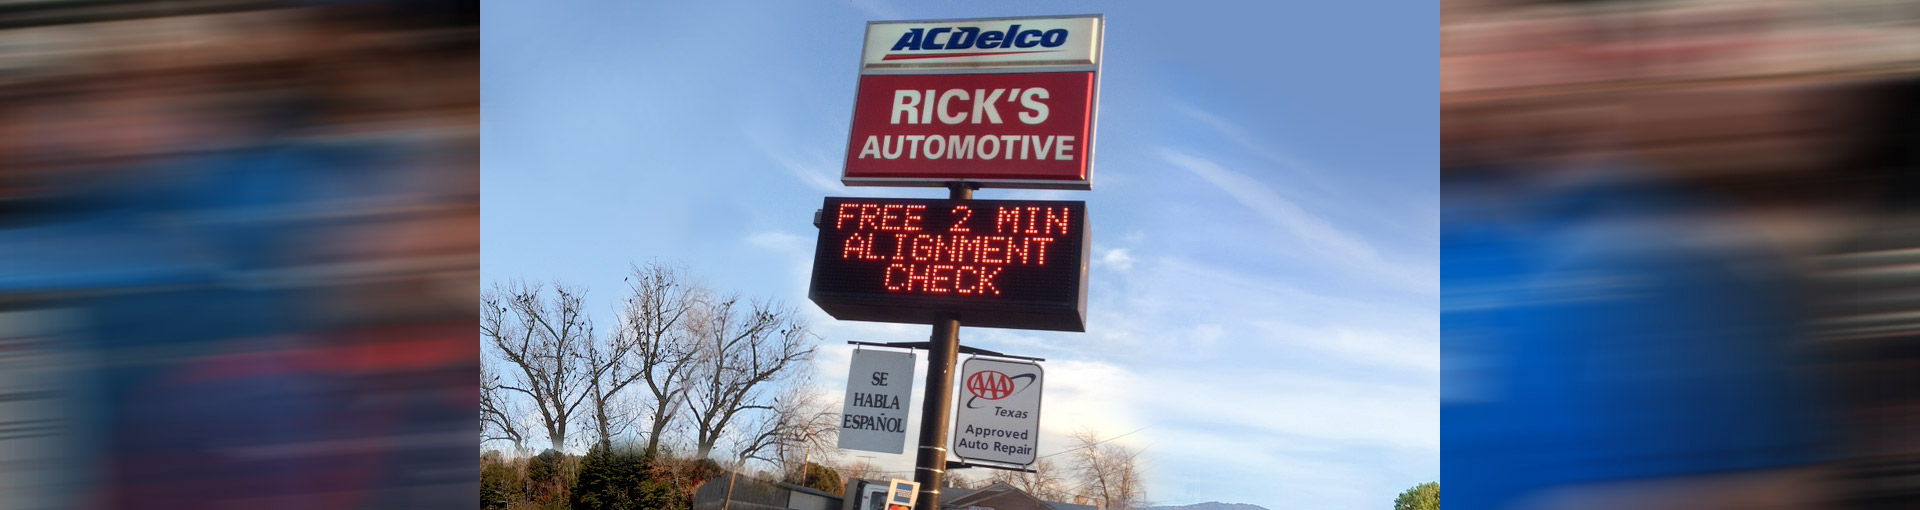 Rick's Automotive Inc